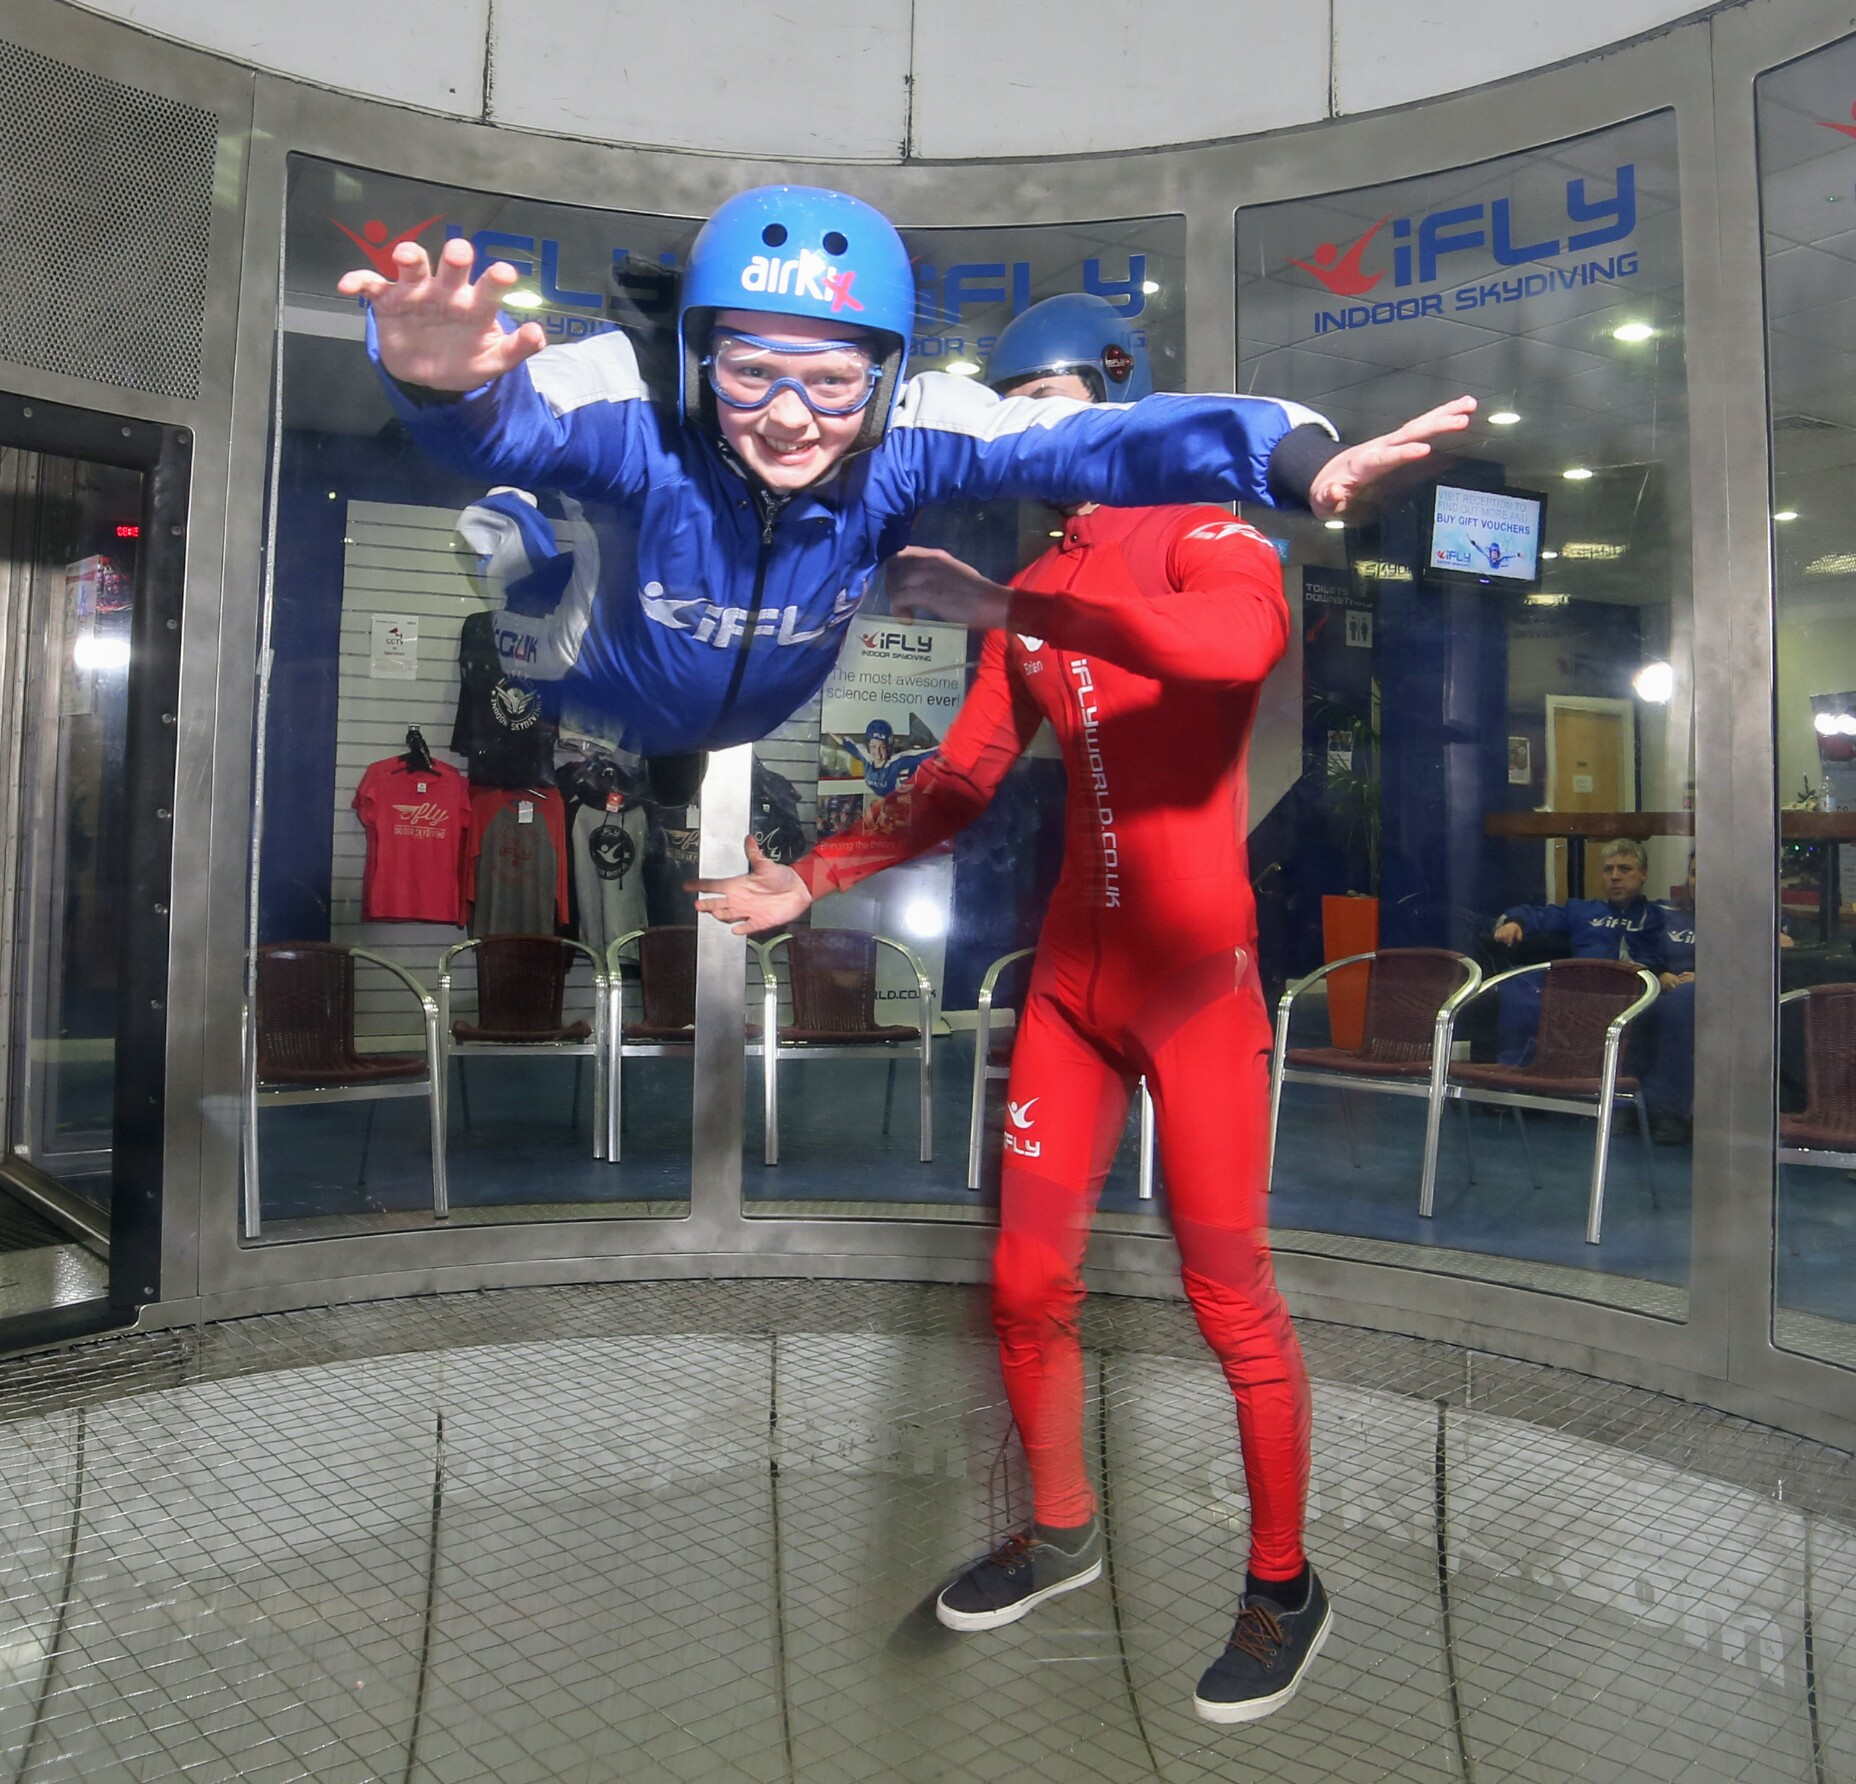 A Birthday adventure at IFly indoor skydiving!